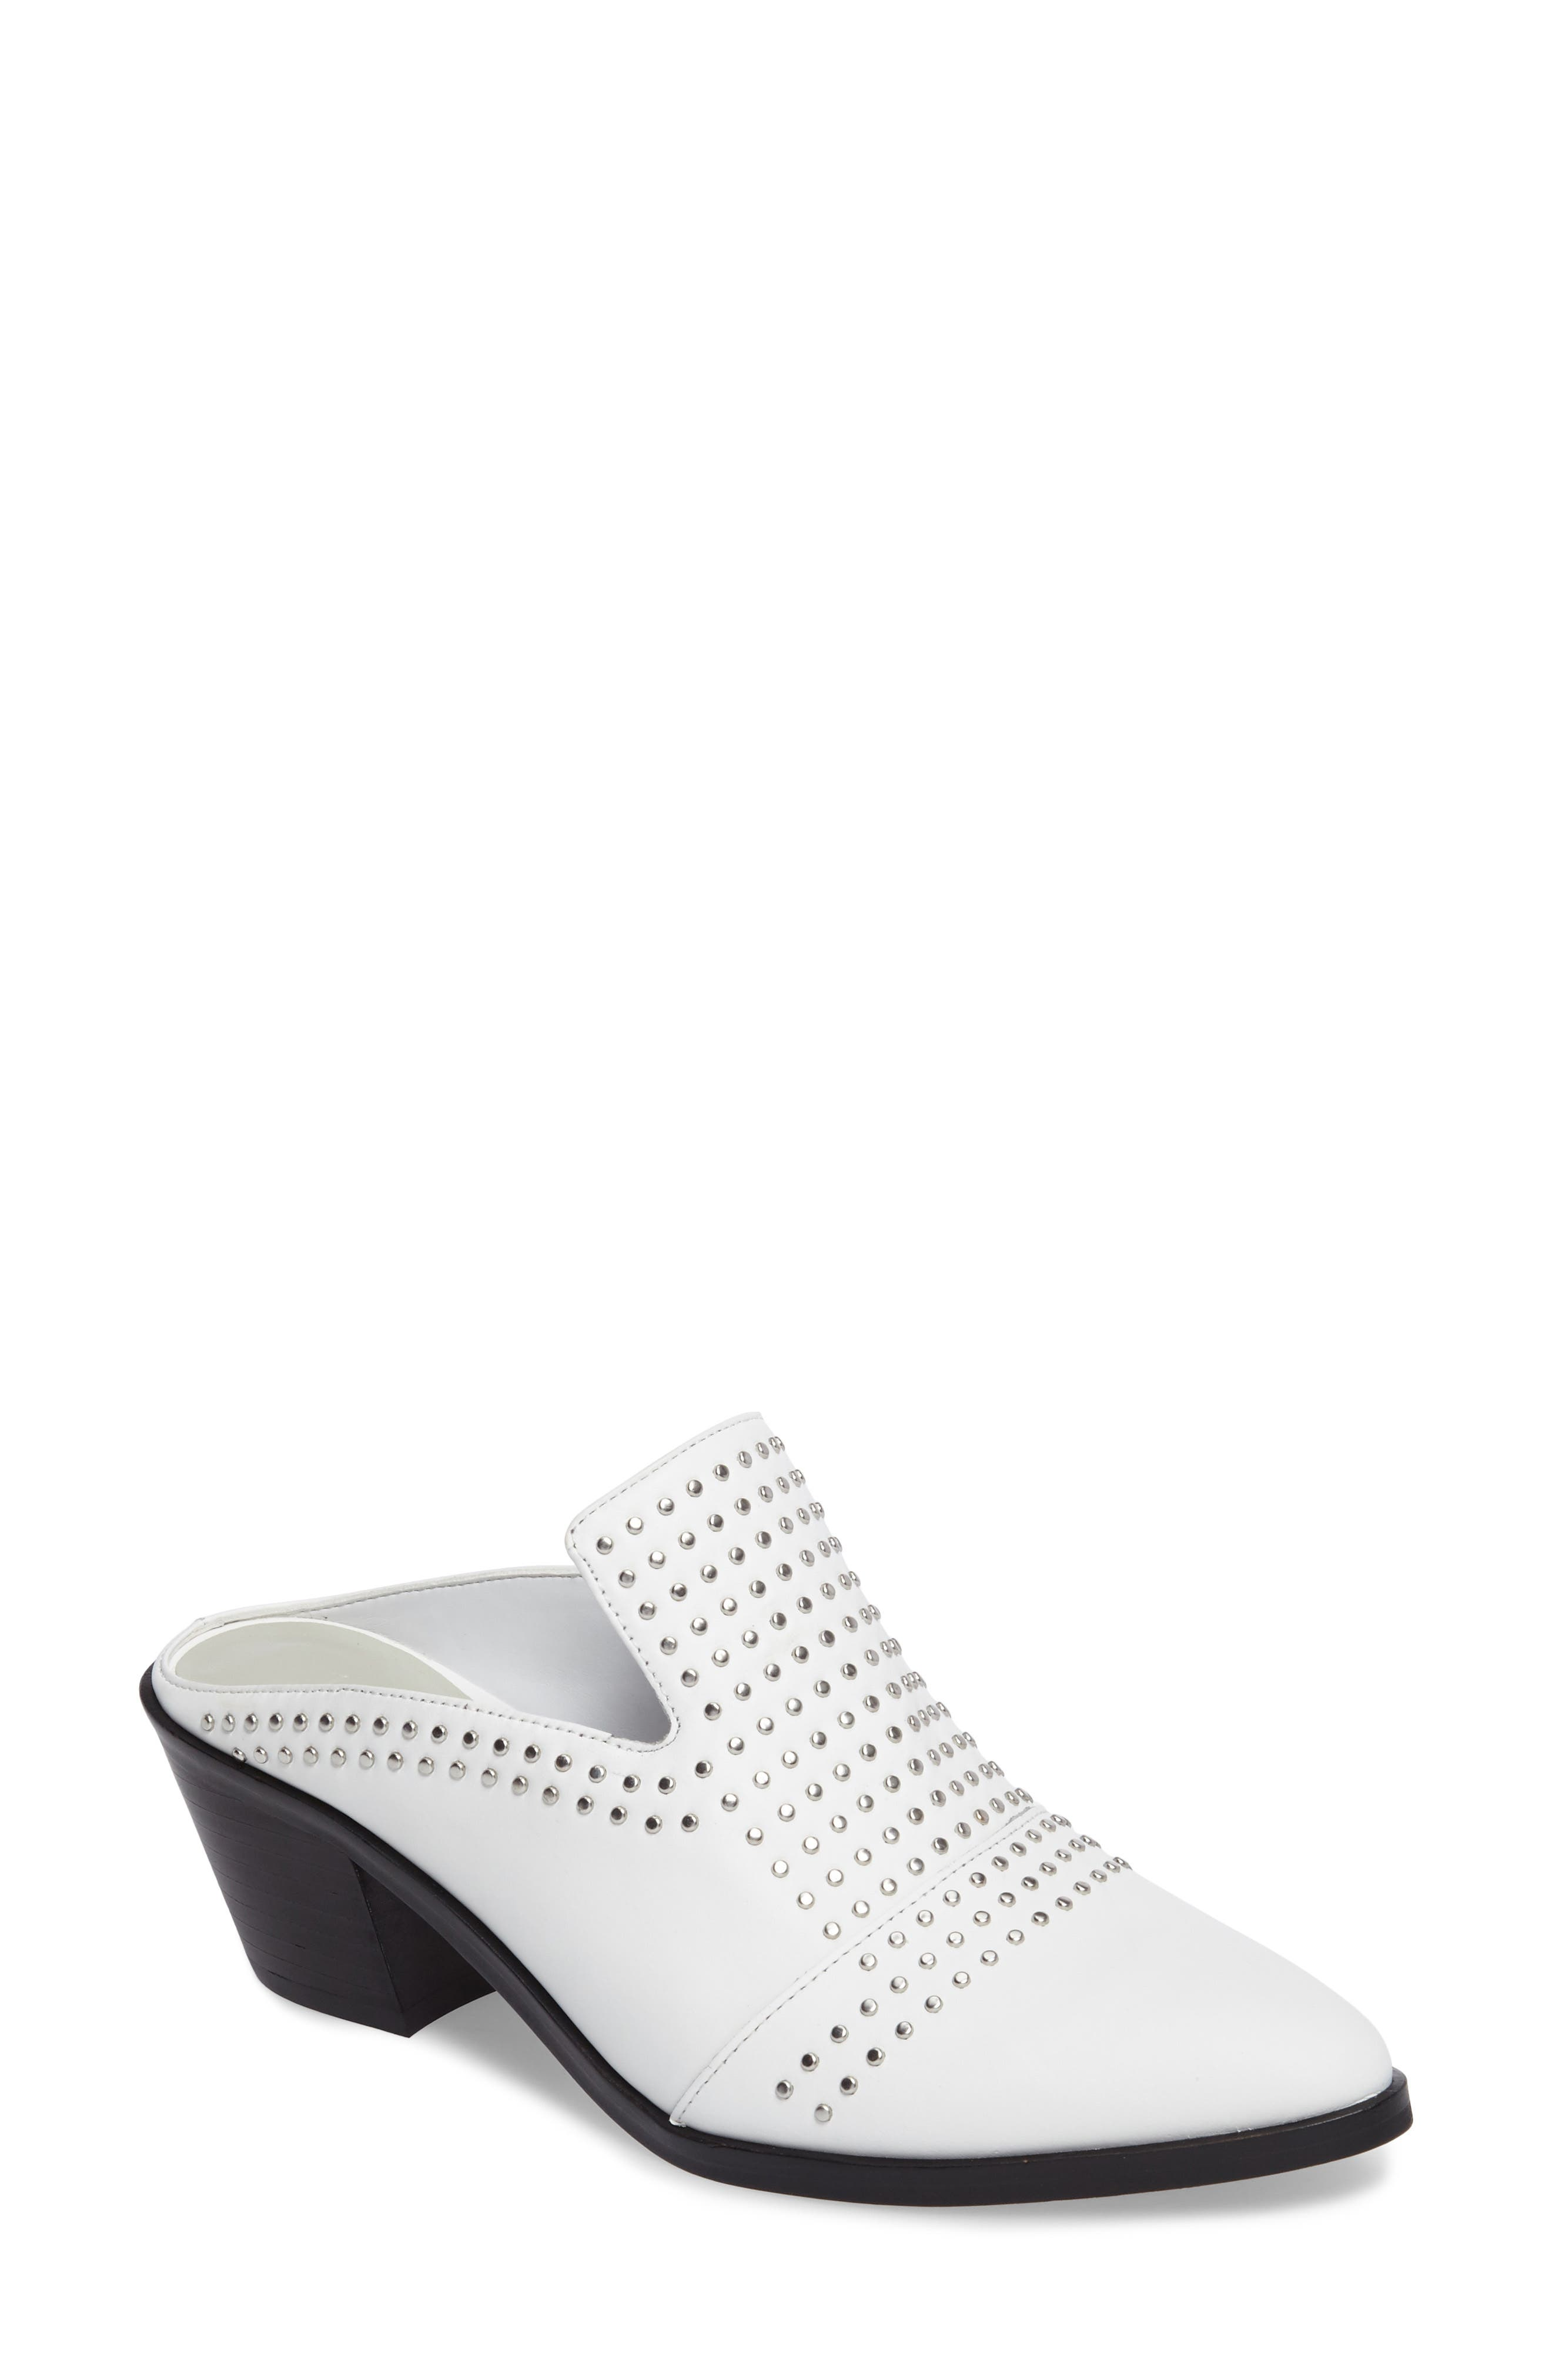 Main Image - 1.STATE Lon Studded Loafer Mule (Women)